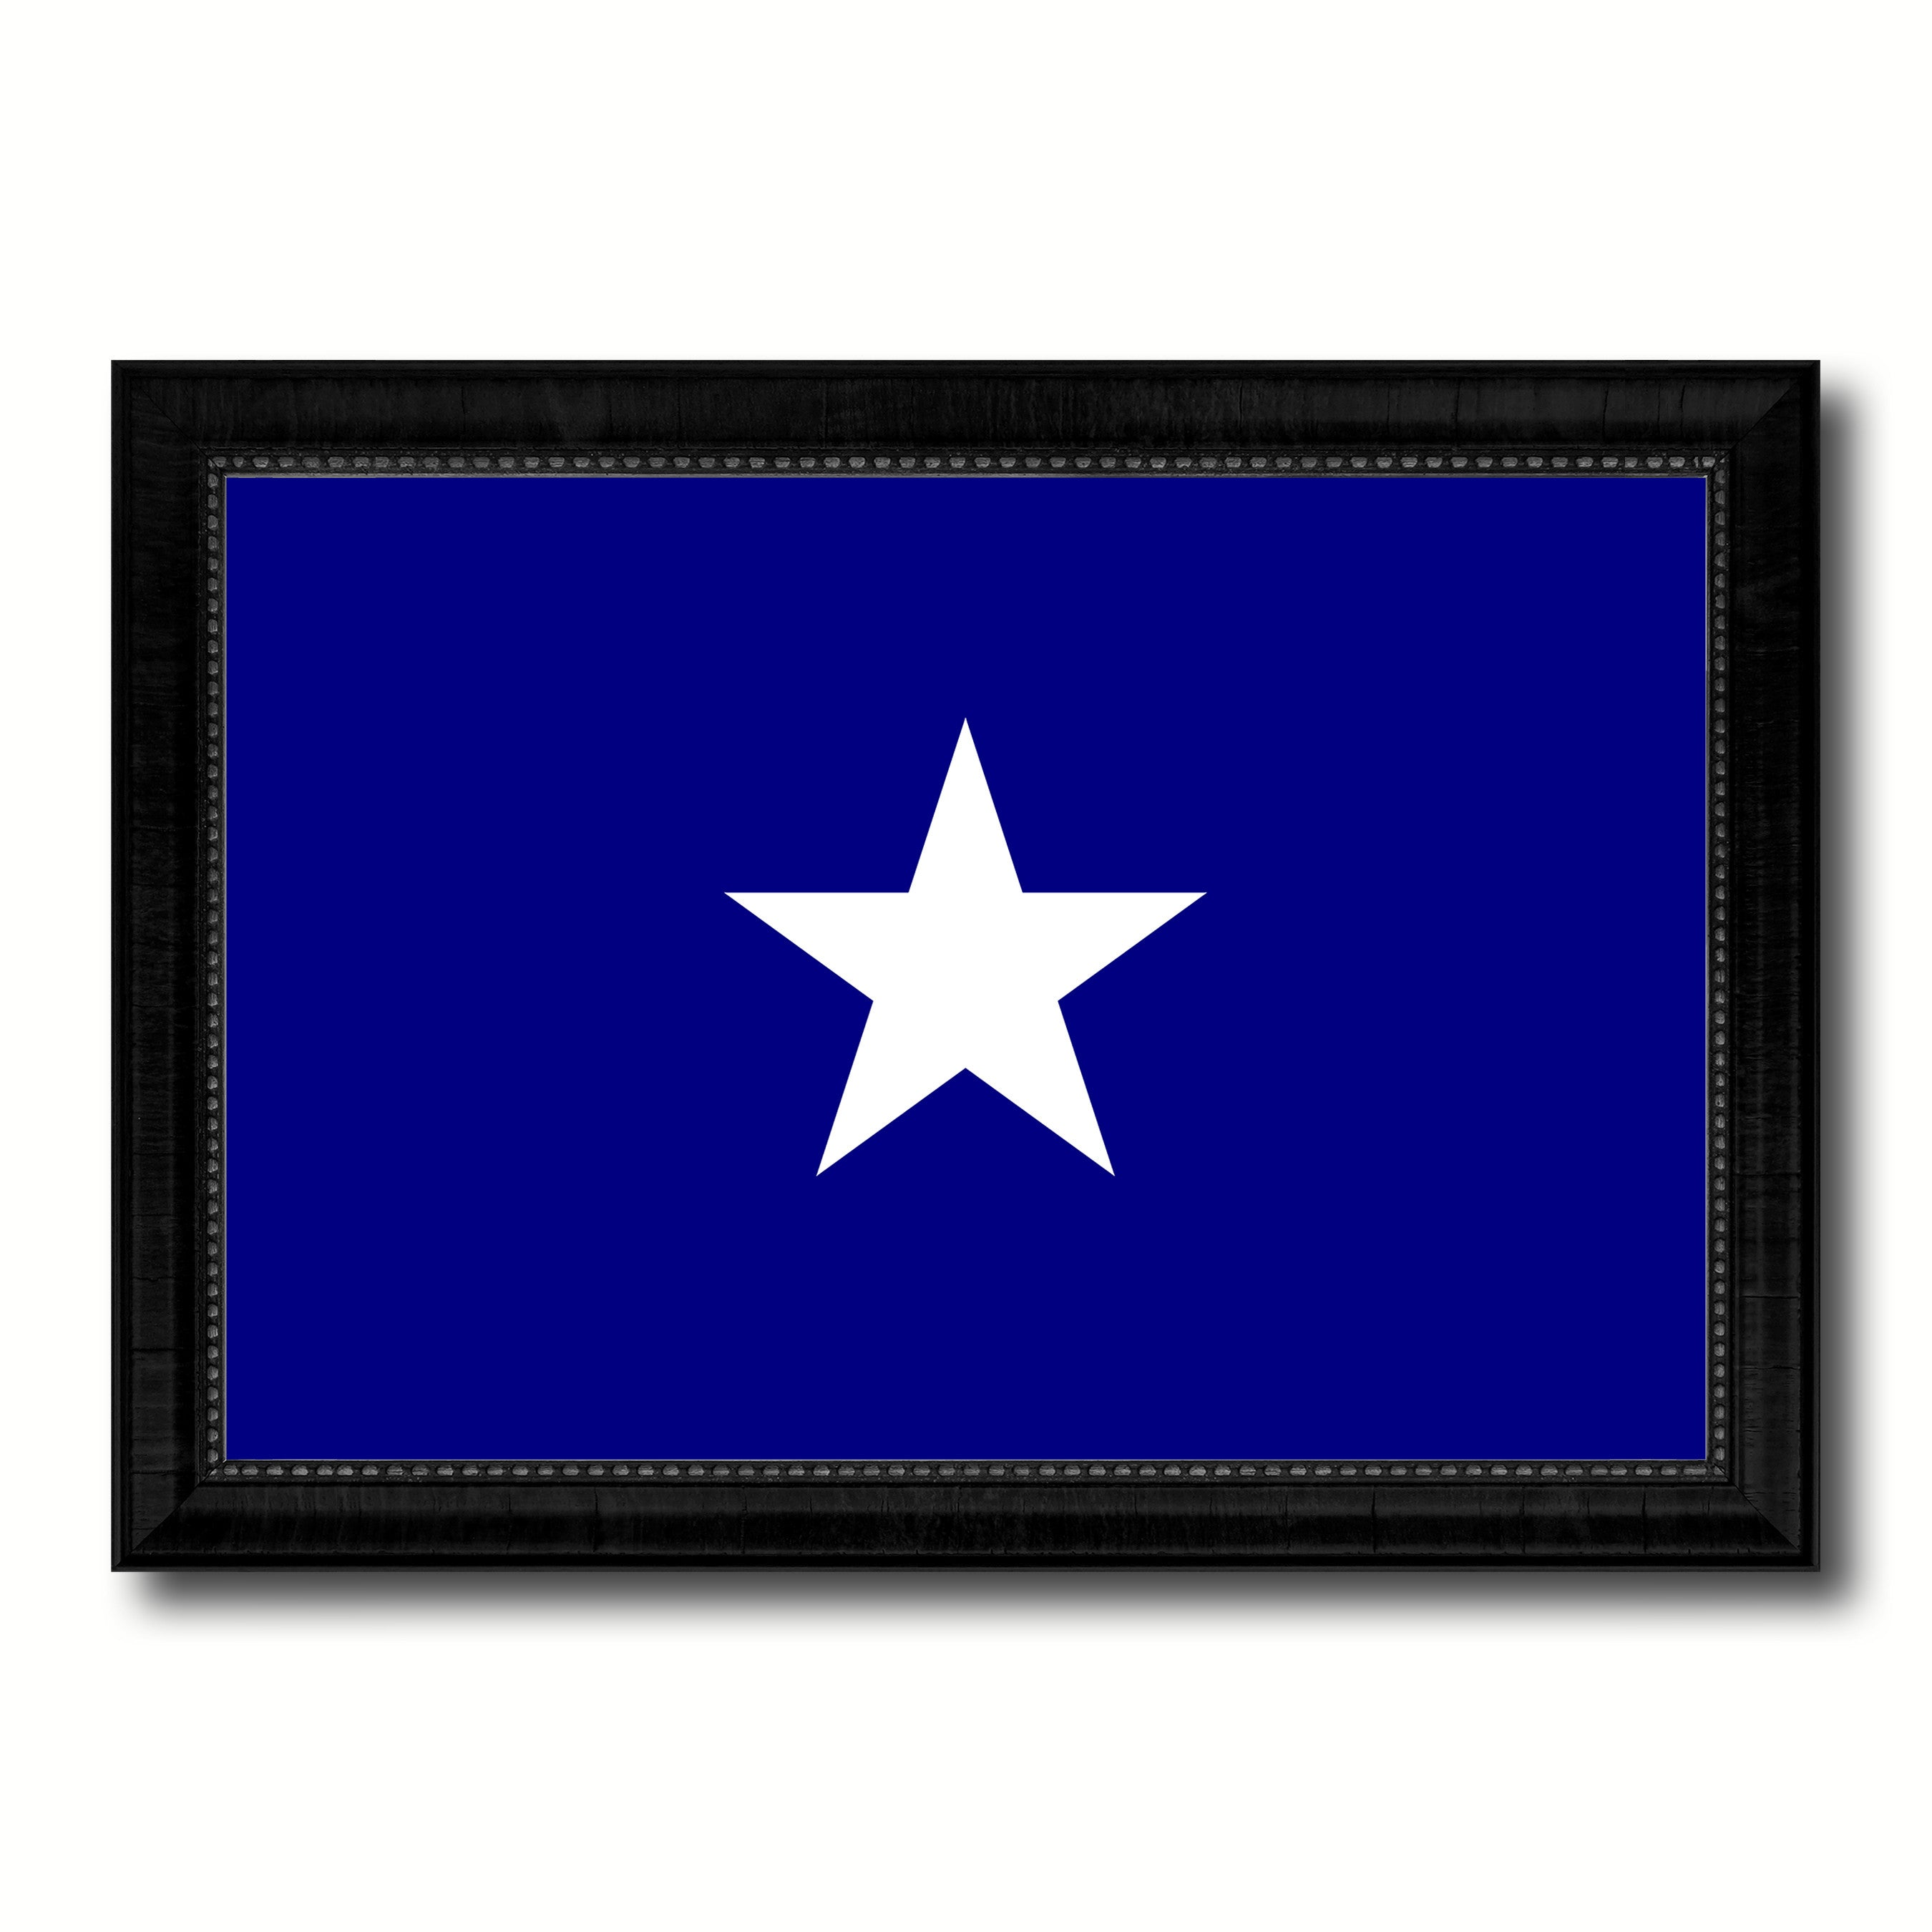 Bonnie Blue in Republic of West Florida Military Flag Canvas Print Black Picture Frame Gifts Home Decor Wall Art